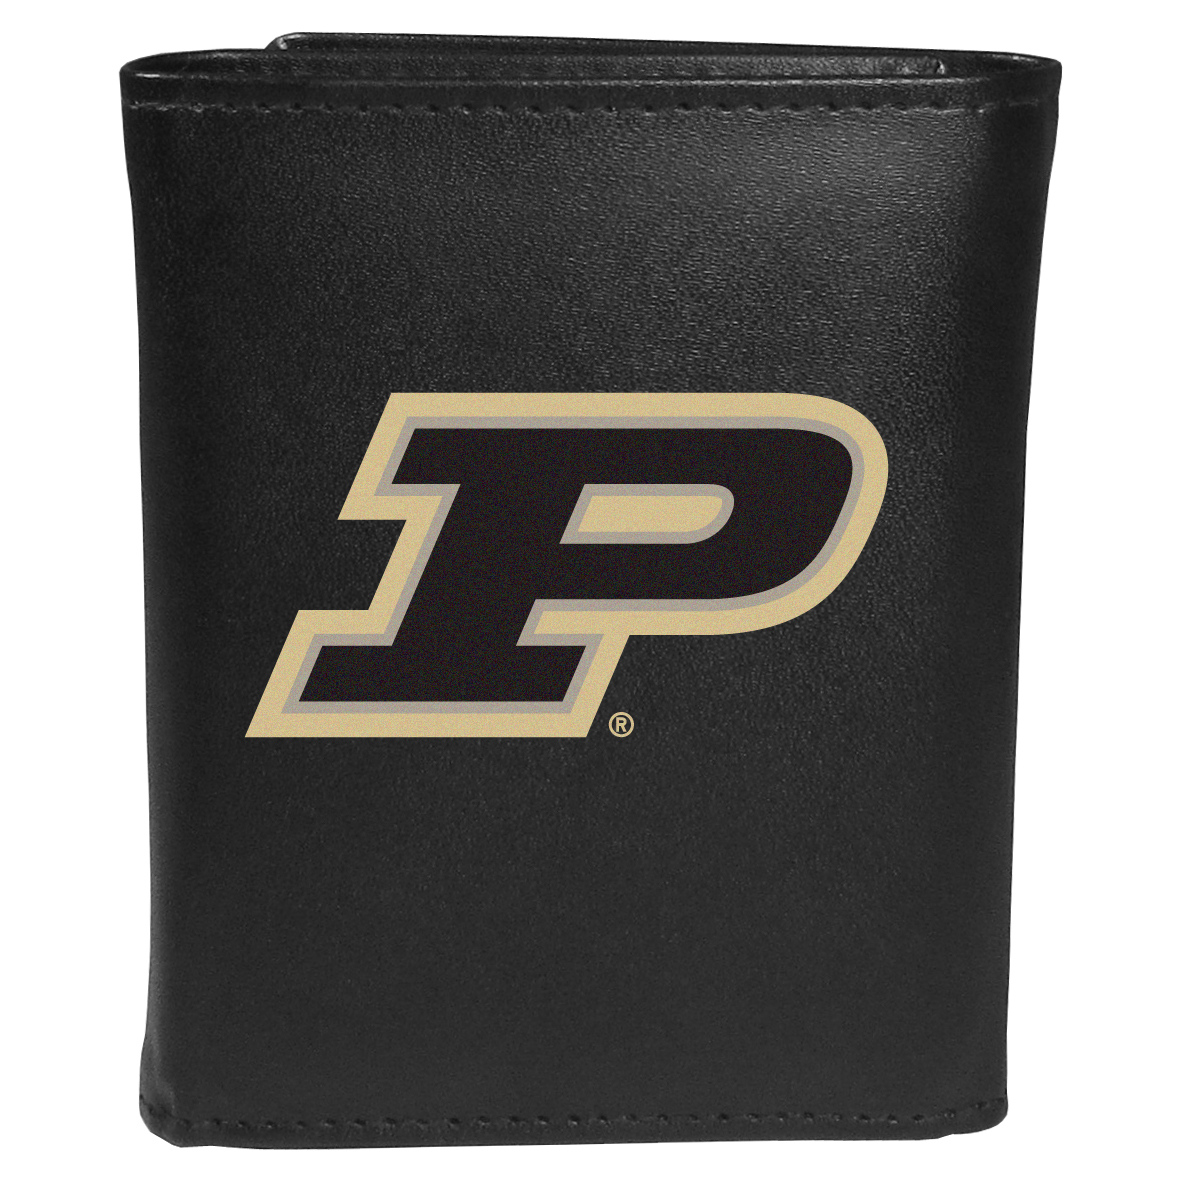 Purdue Boilermakers Tri-fold Wallet Large Logo - Sports fans do not have to sacrifice style with this classic tri-fold wallet that sports thePurdue Boilermakers?extra large logo. This men's fashion accessory has a leather grain look and expert craftmanship for a quality wallet at a great price. The wallet features inner credit card slots, windowed ID slot and a large billfold pocket. The front of the wallet features an extra large printed team logo.